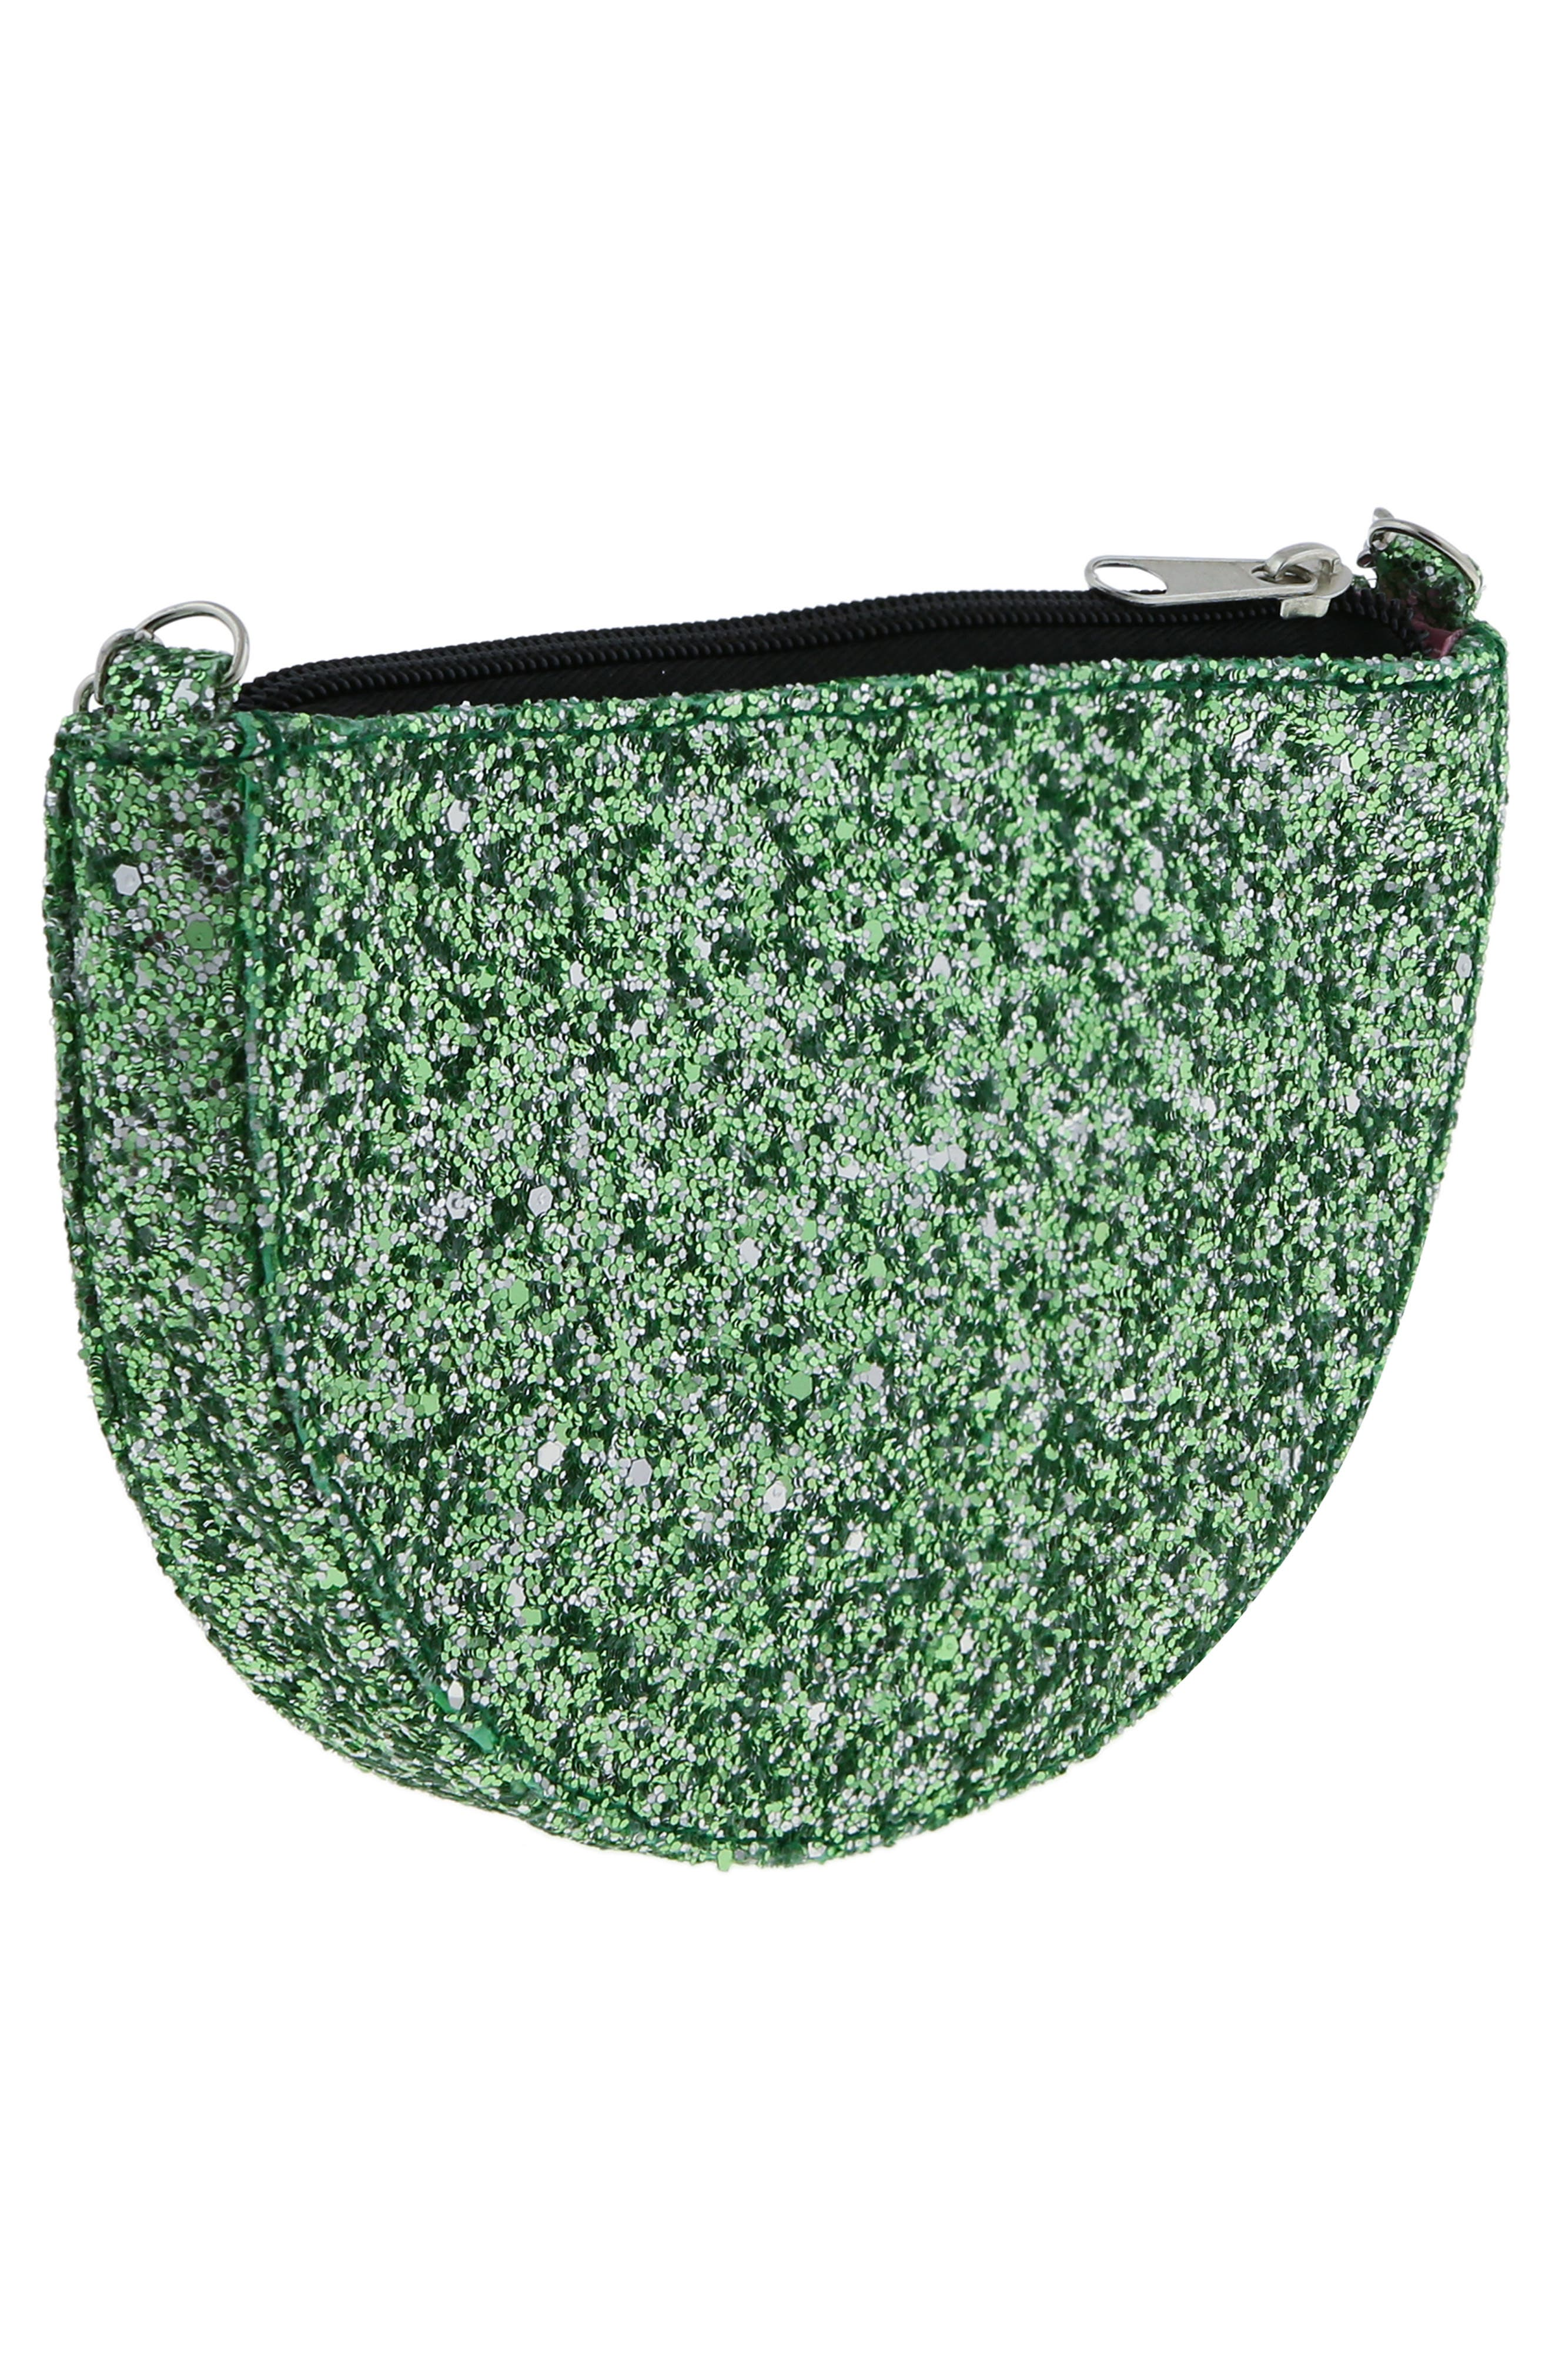 Glitter Watermelon Crossbody Bag,                             Alternate thumbnail 2, color,                             MULTI CO